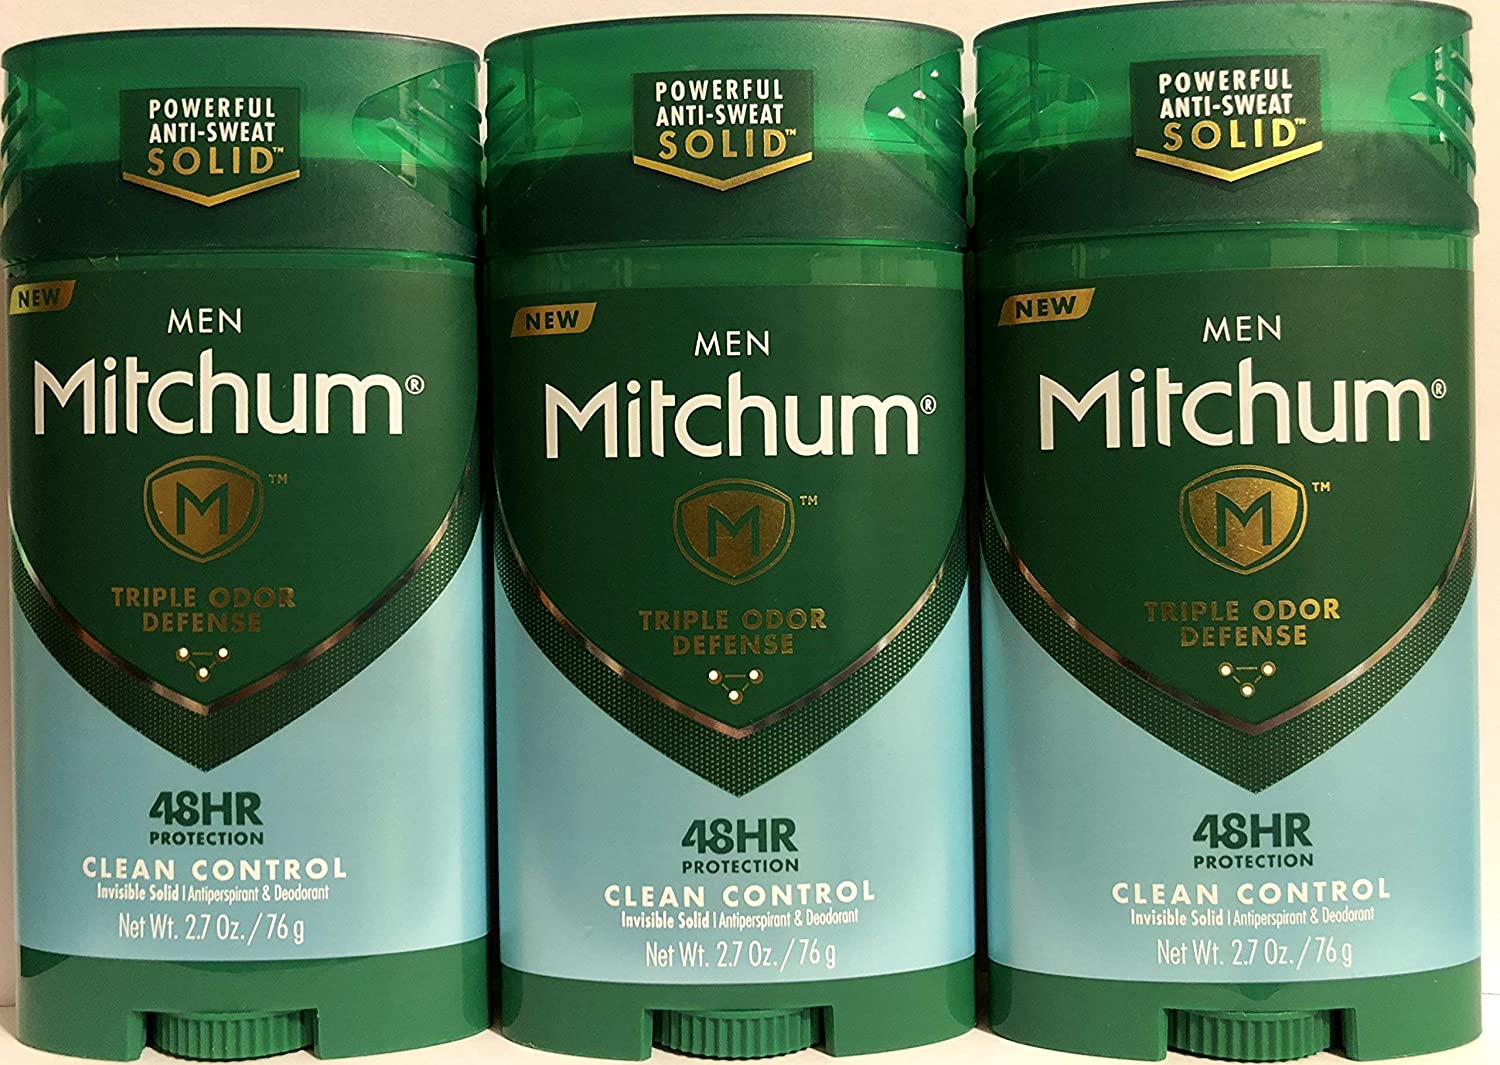 Mitchum Antiperspirant & Deodorant For Men - Invisible Solid - Clean Control - Net Wt. 2.7 OZ (76 g) Per Stick - Pack of 3 Sticks